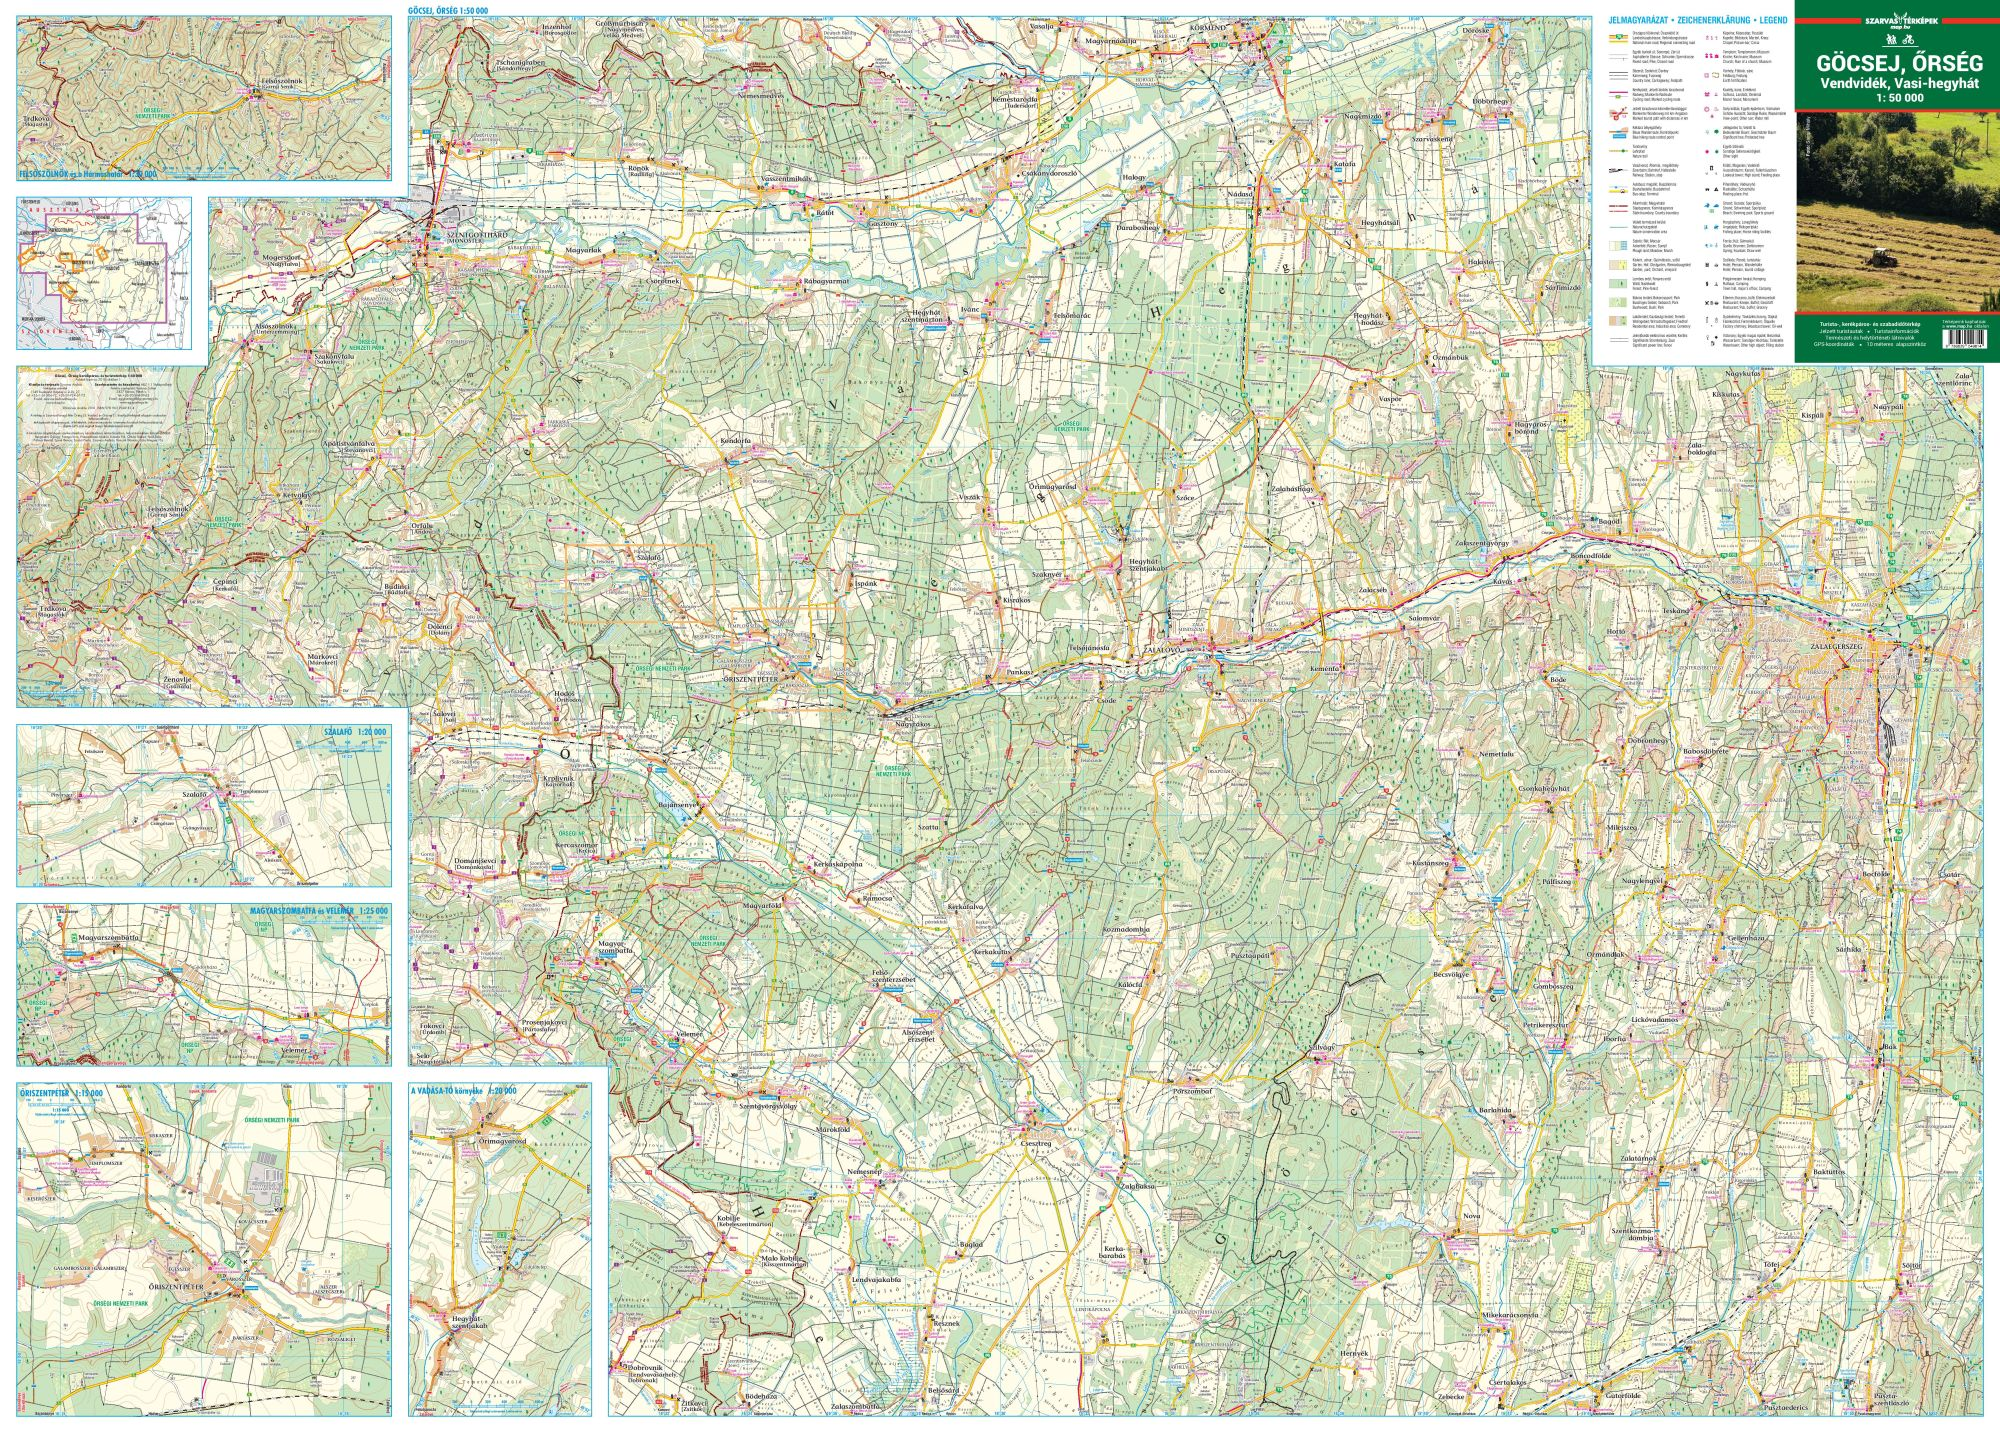 Toruist-biking map for mobile devices and tablets